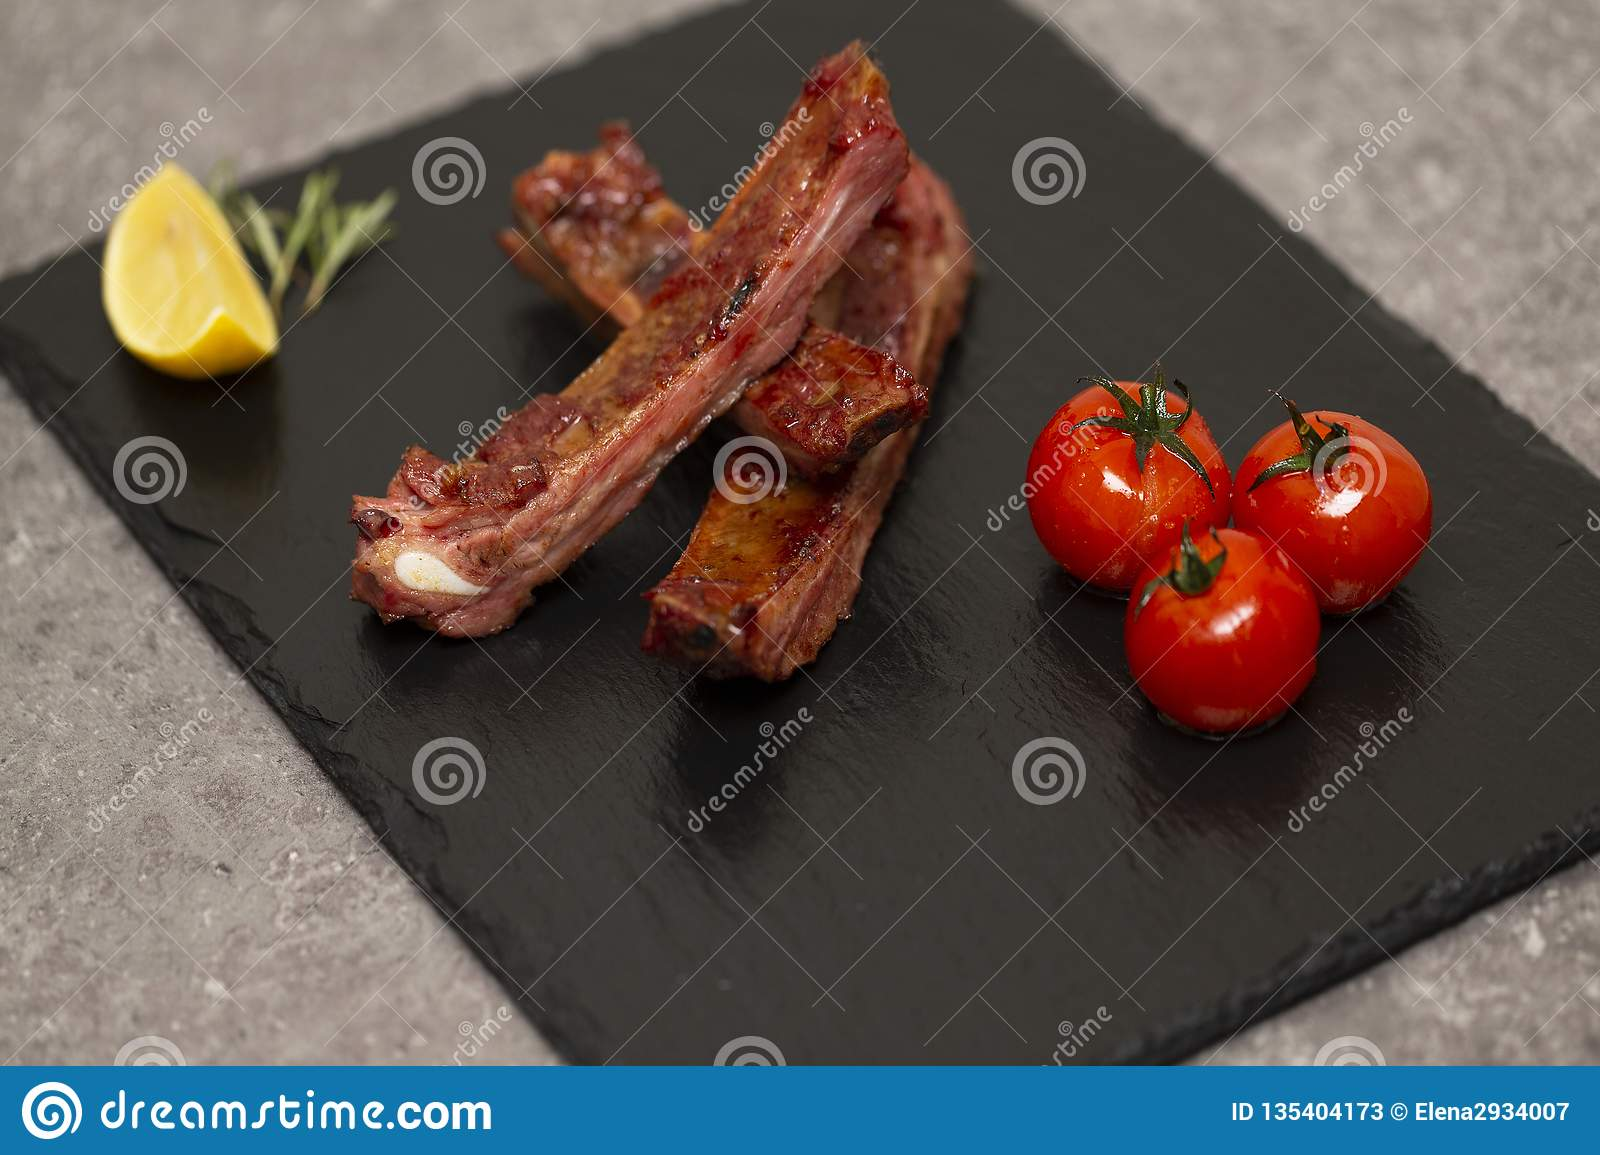 Pork ribs in barbecue sauce and honey roasted tomatoes on a black slate dish.